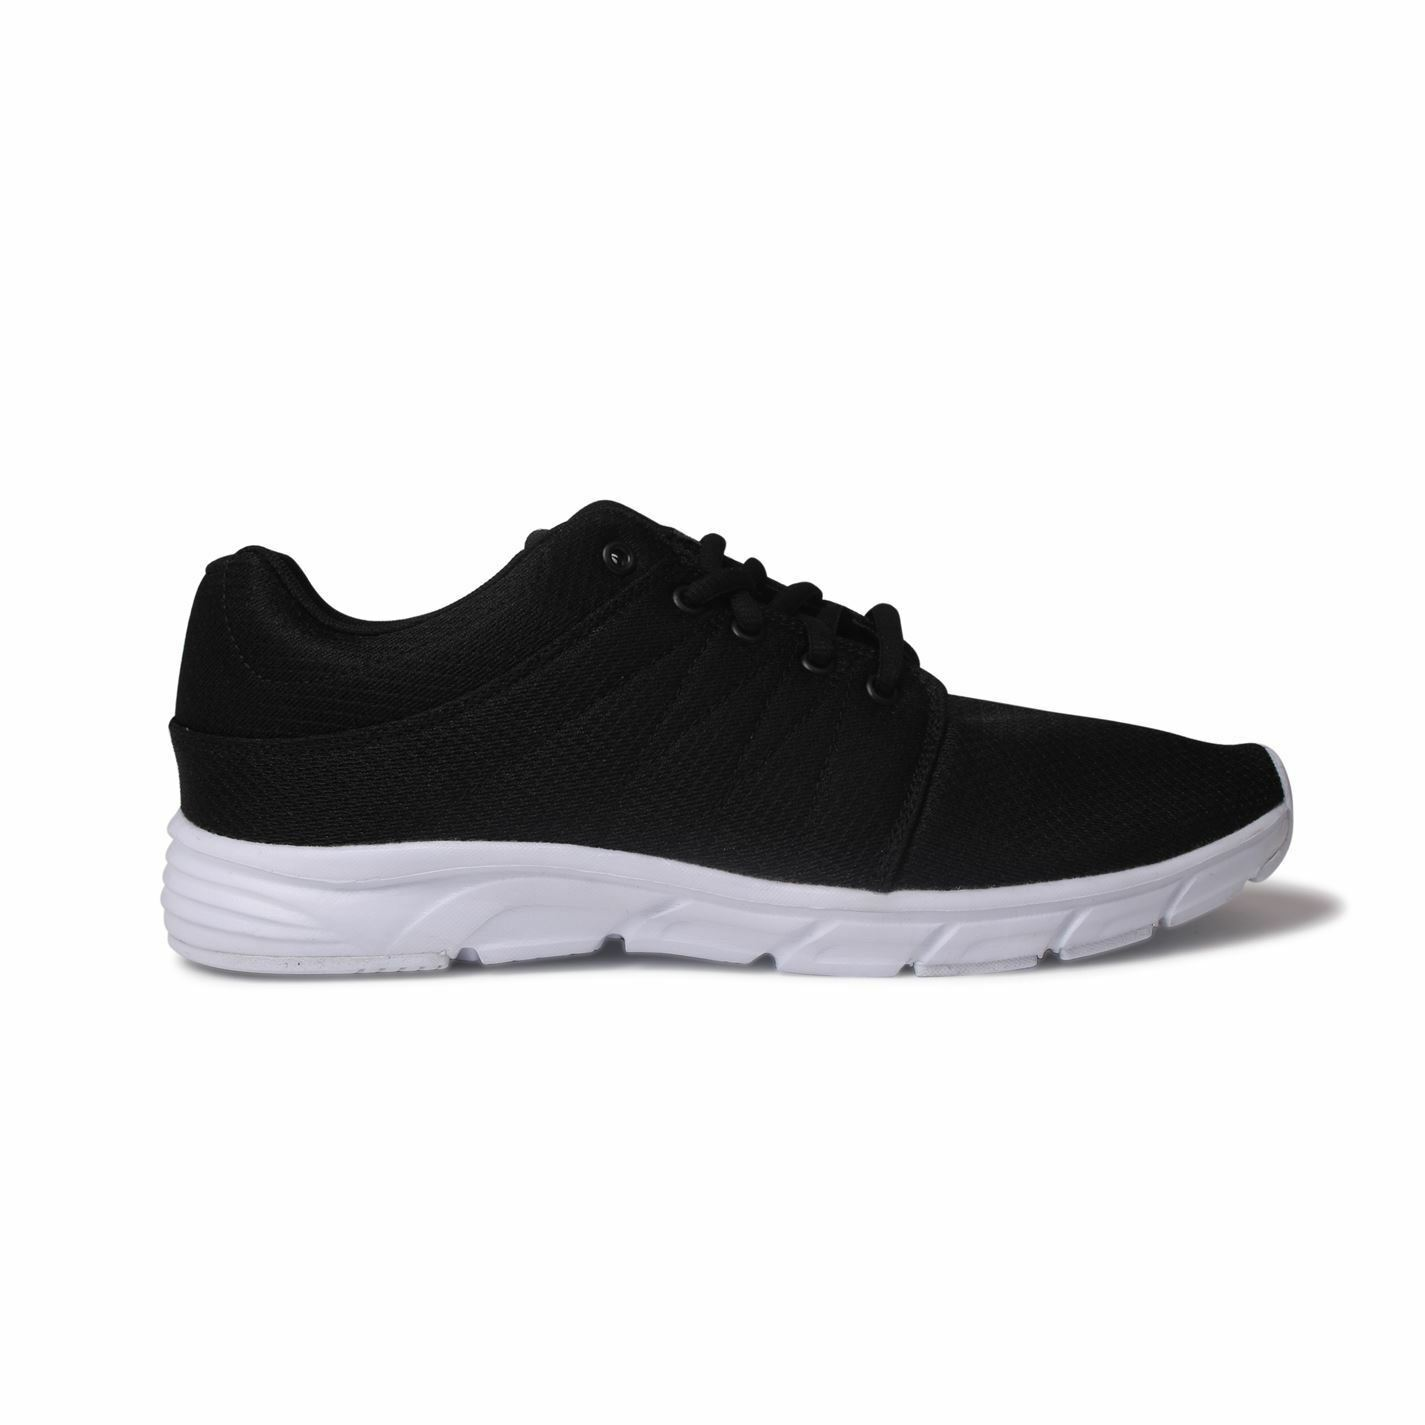 Fabric Reup Runner Trainers Mens Black/White Sports Shoes Sneakers